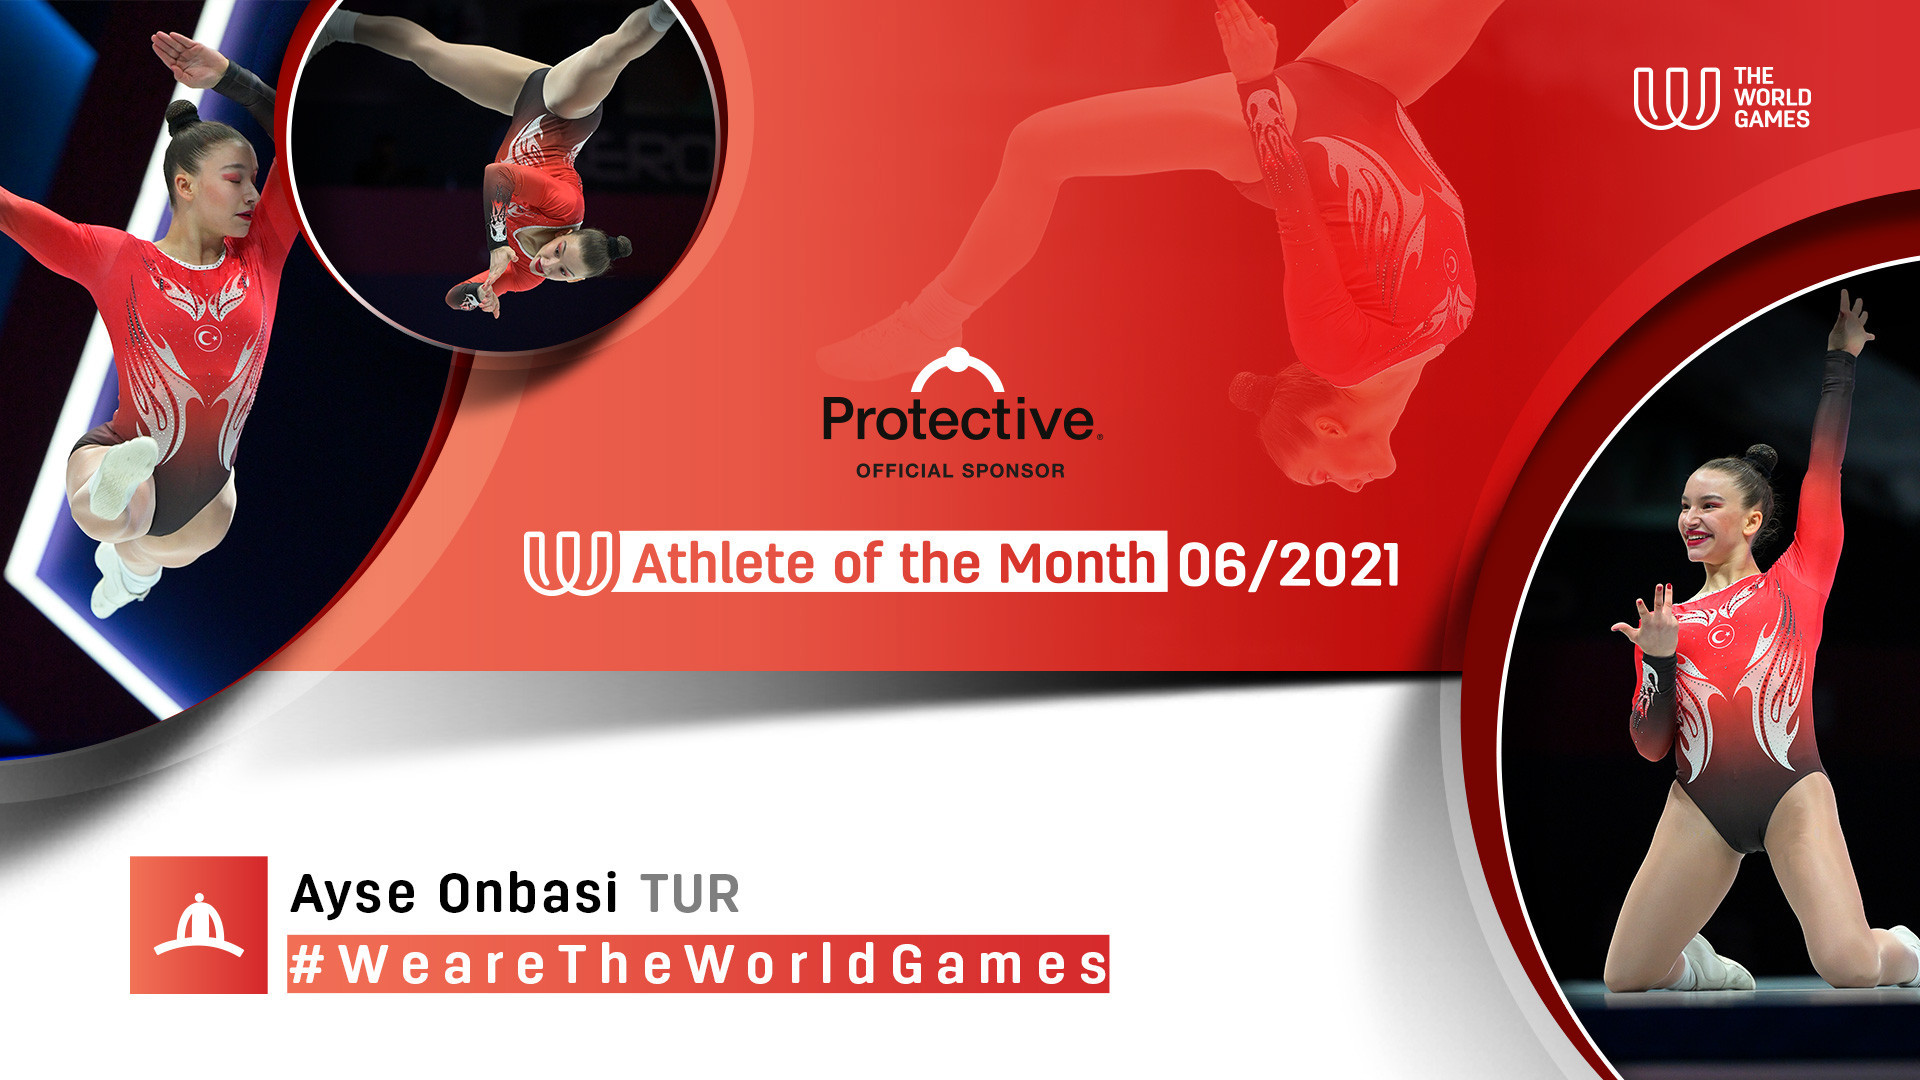 New aerobic gymnastics world champion Onbaşı named The World Games Athlete of the Month for June